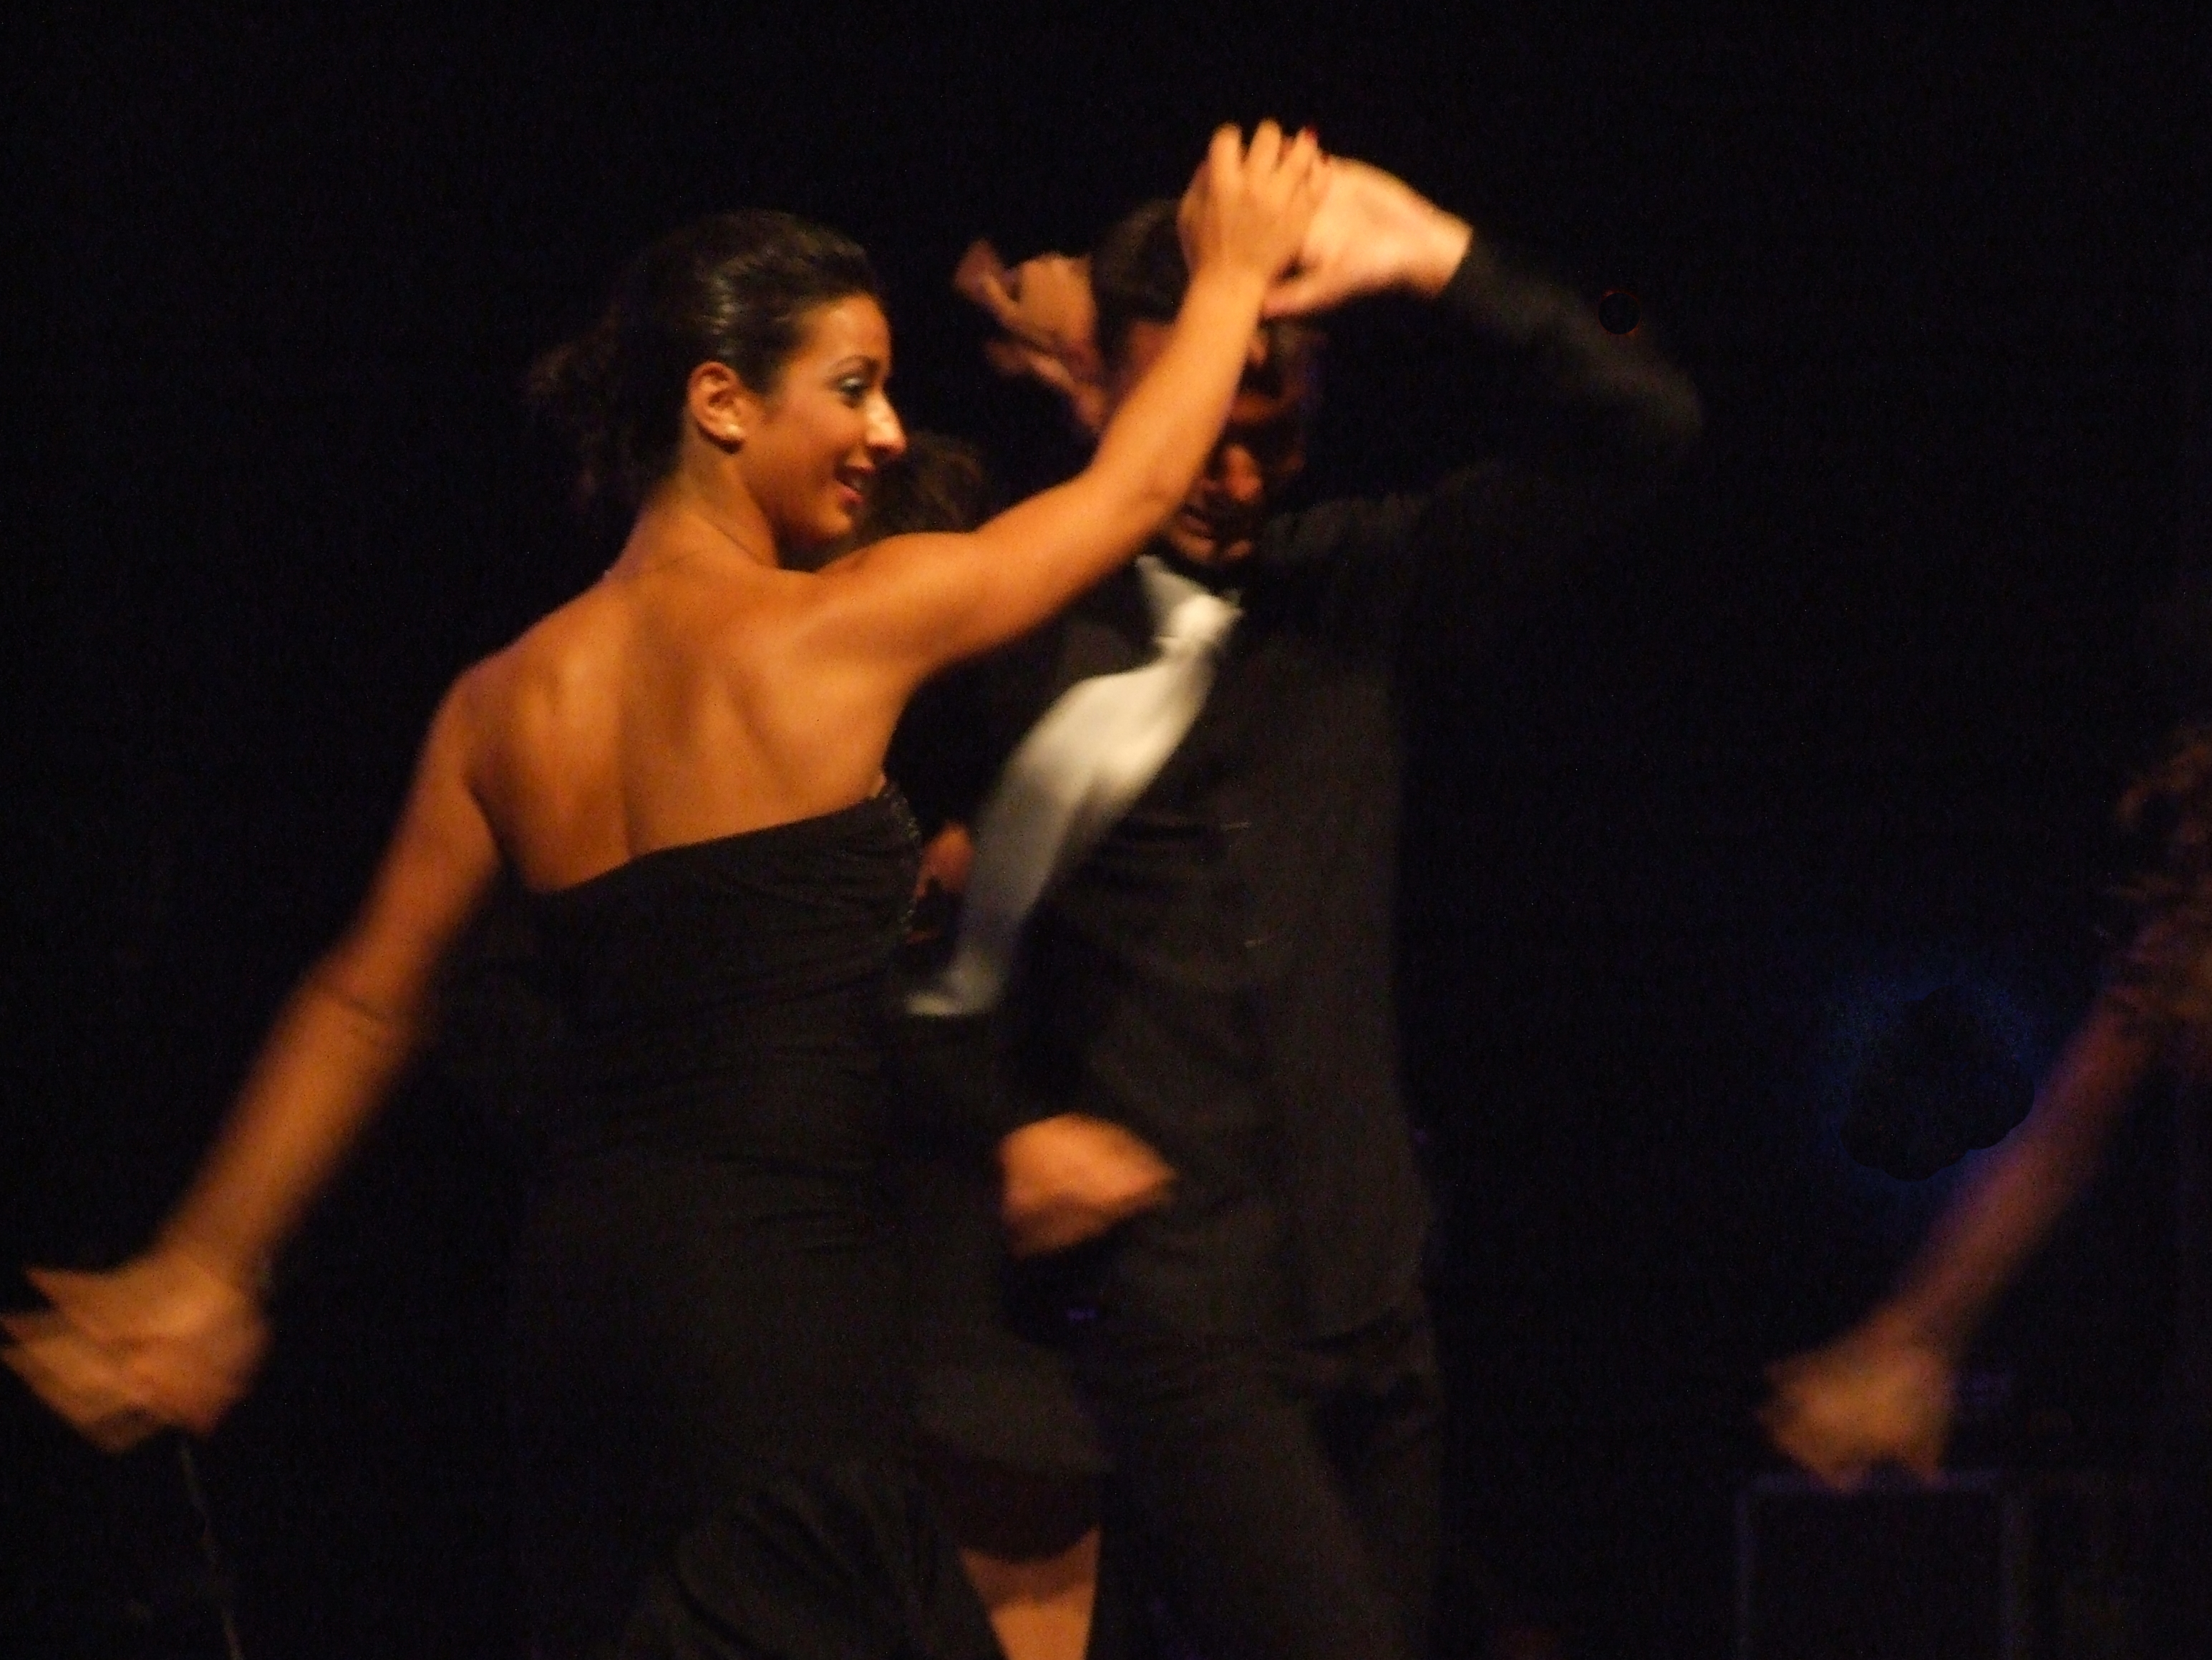 Mambo dance tremestieri etneo sicilia italy - creative commons by gnuckx photo